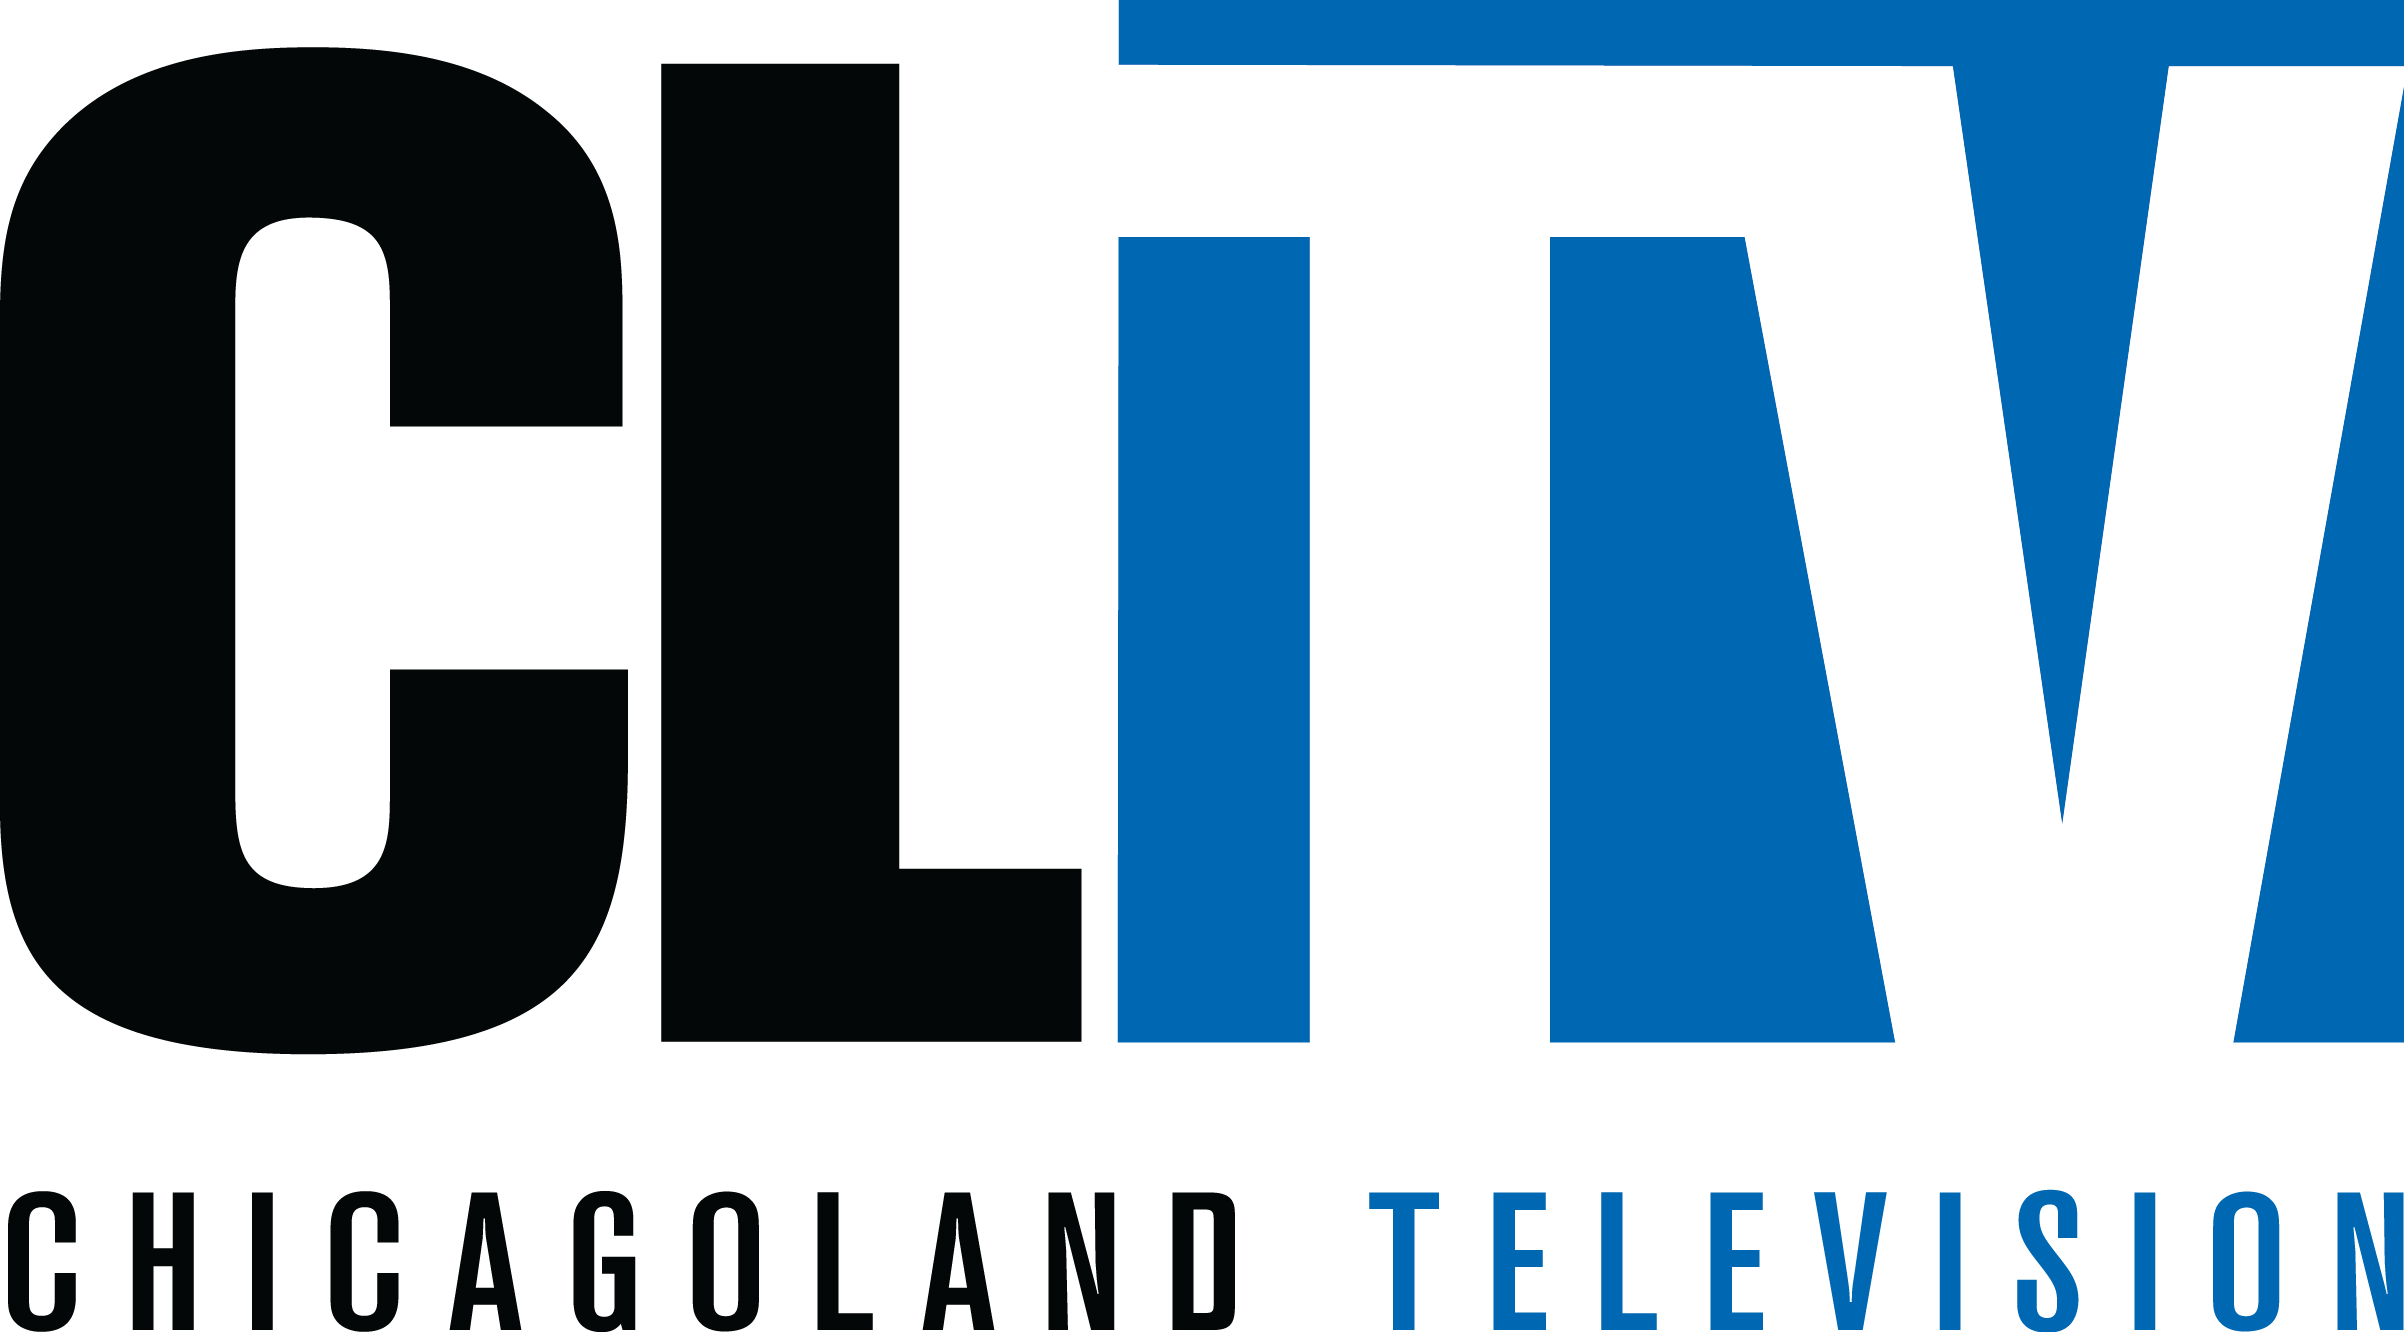 William S. Wojcik - CLTV Chicago Appearance